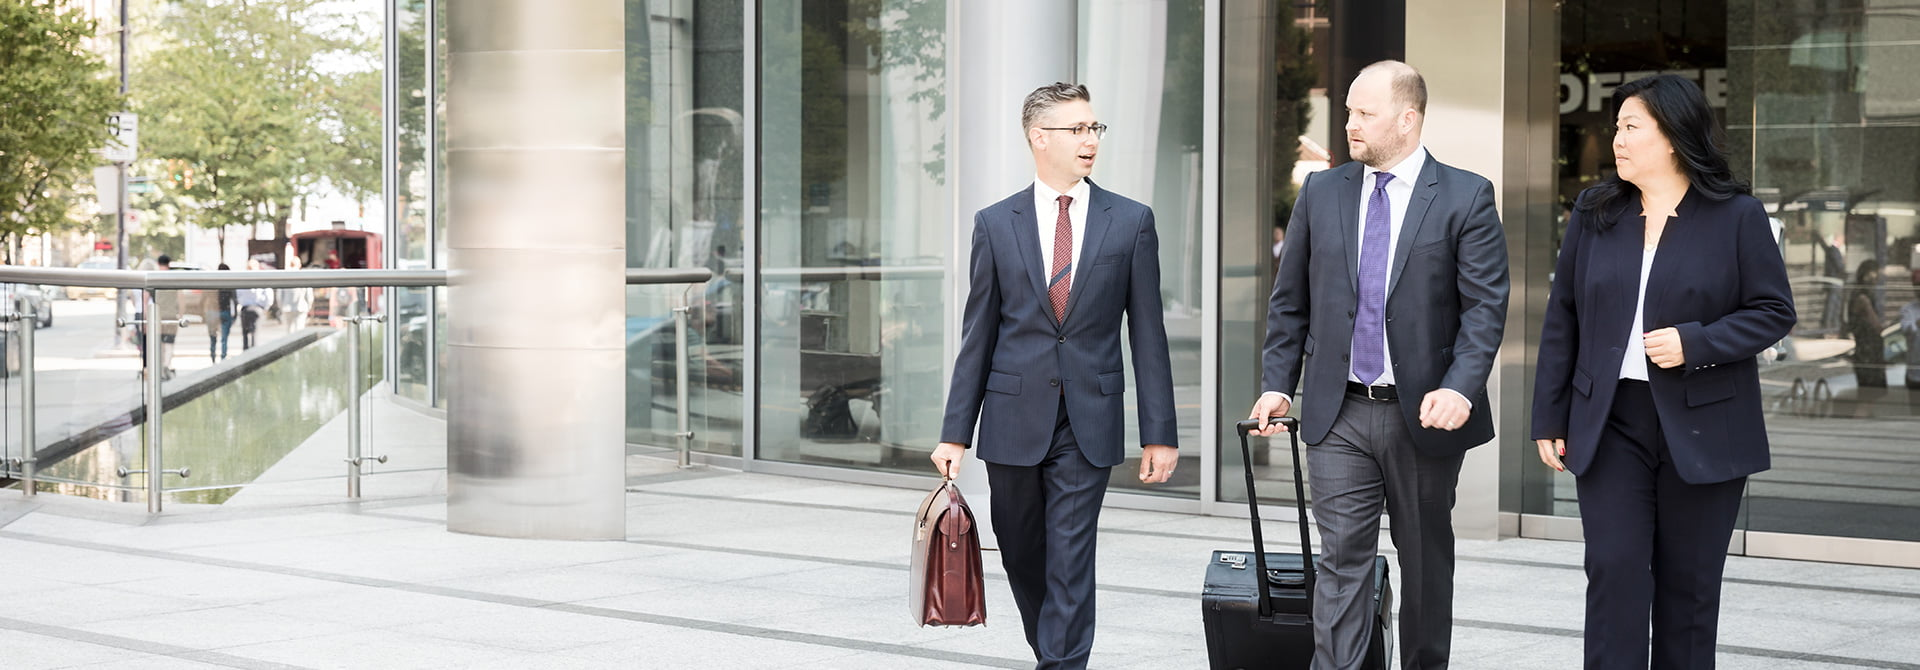 Employment Lawyers Vancouver - Harris & Company